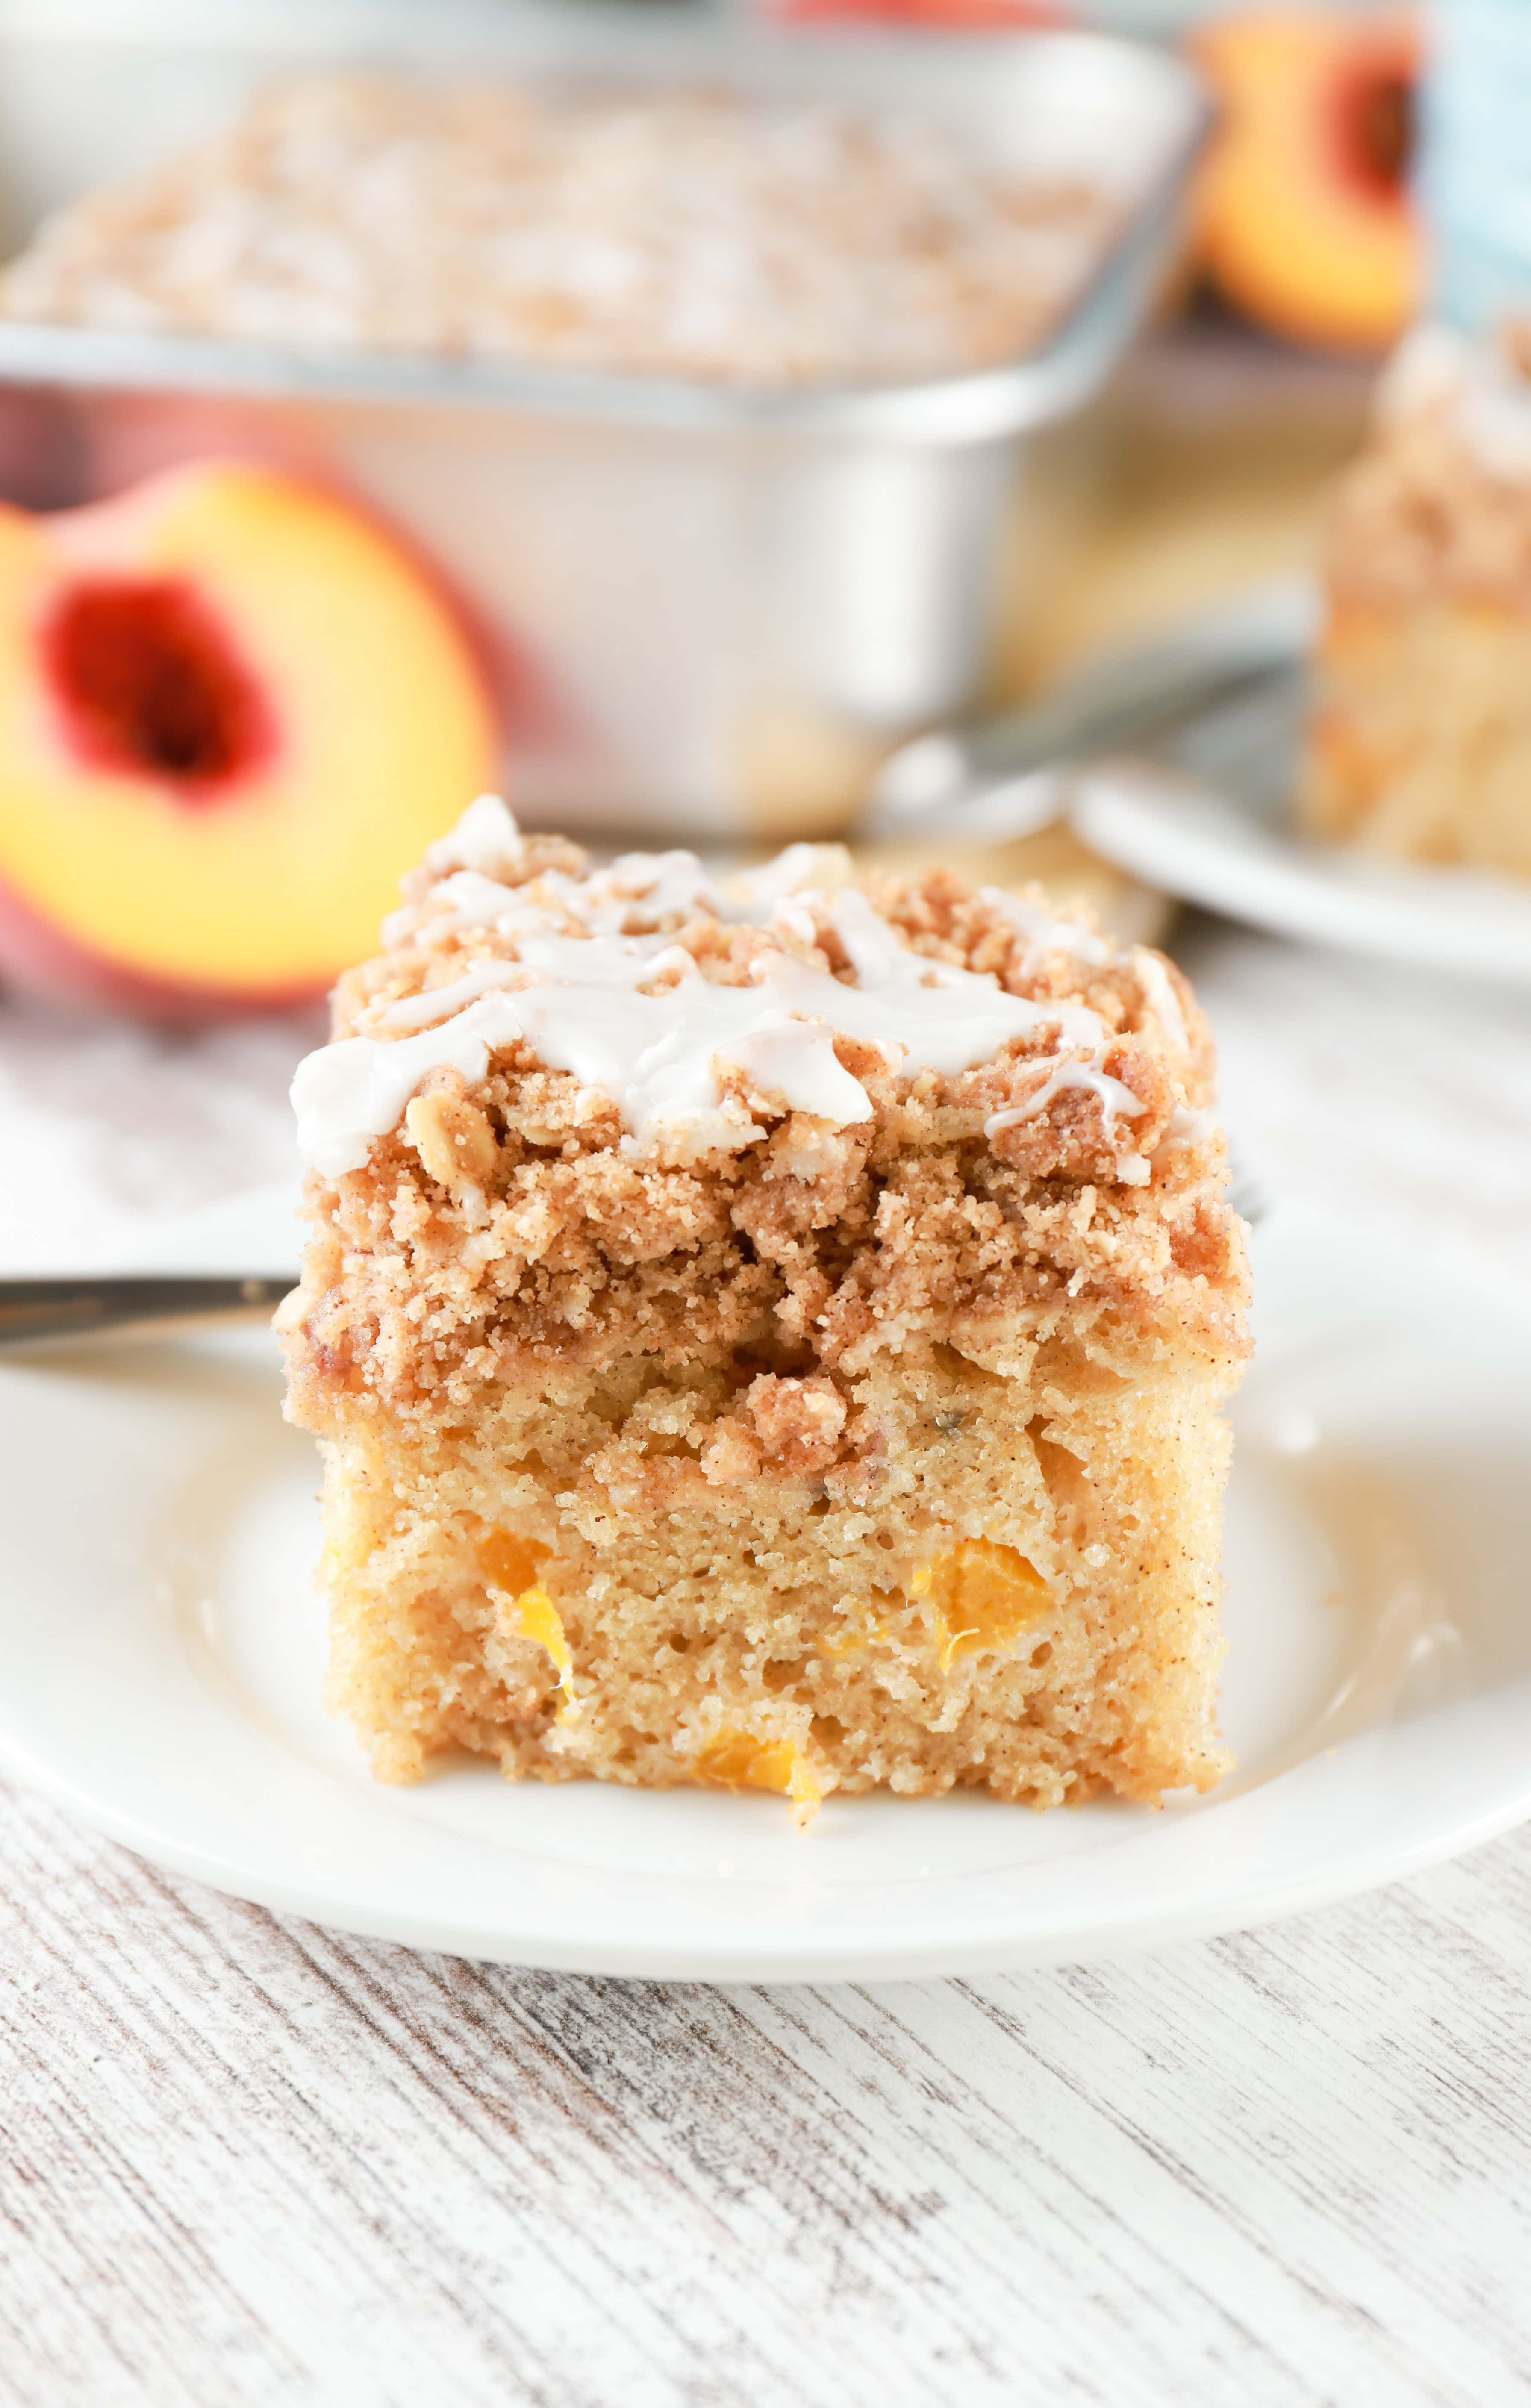 Side view of a piece of peach coffee cake with baking dish of peach coffee cake in the background.